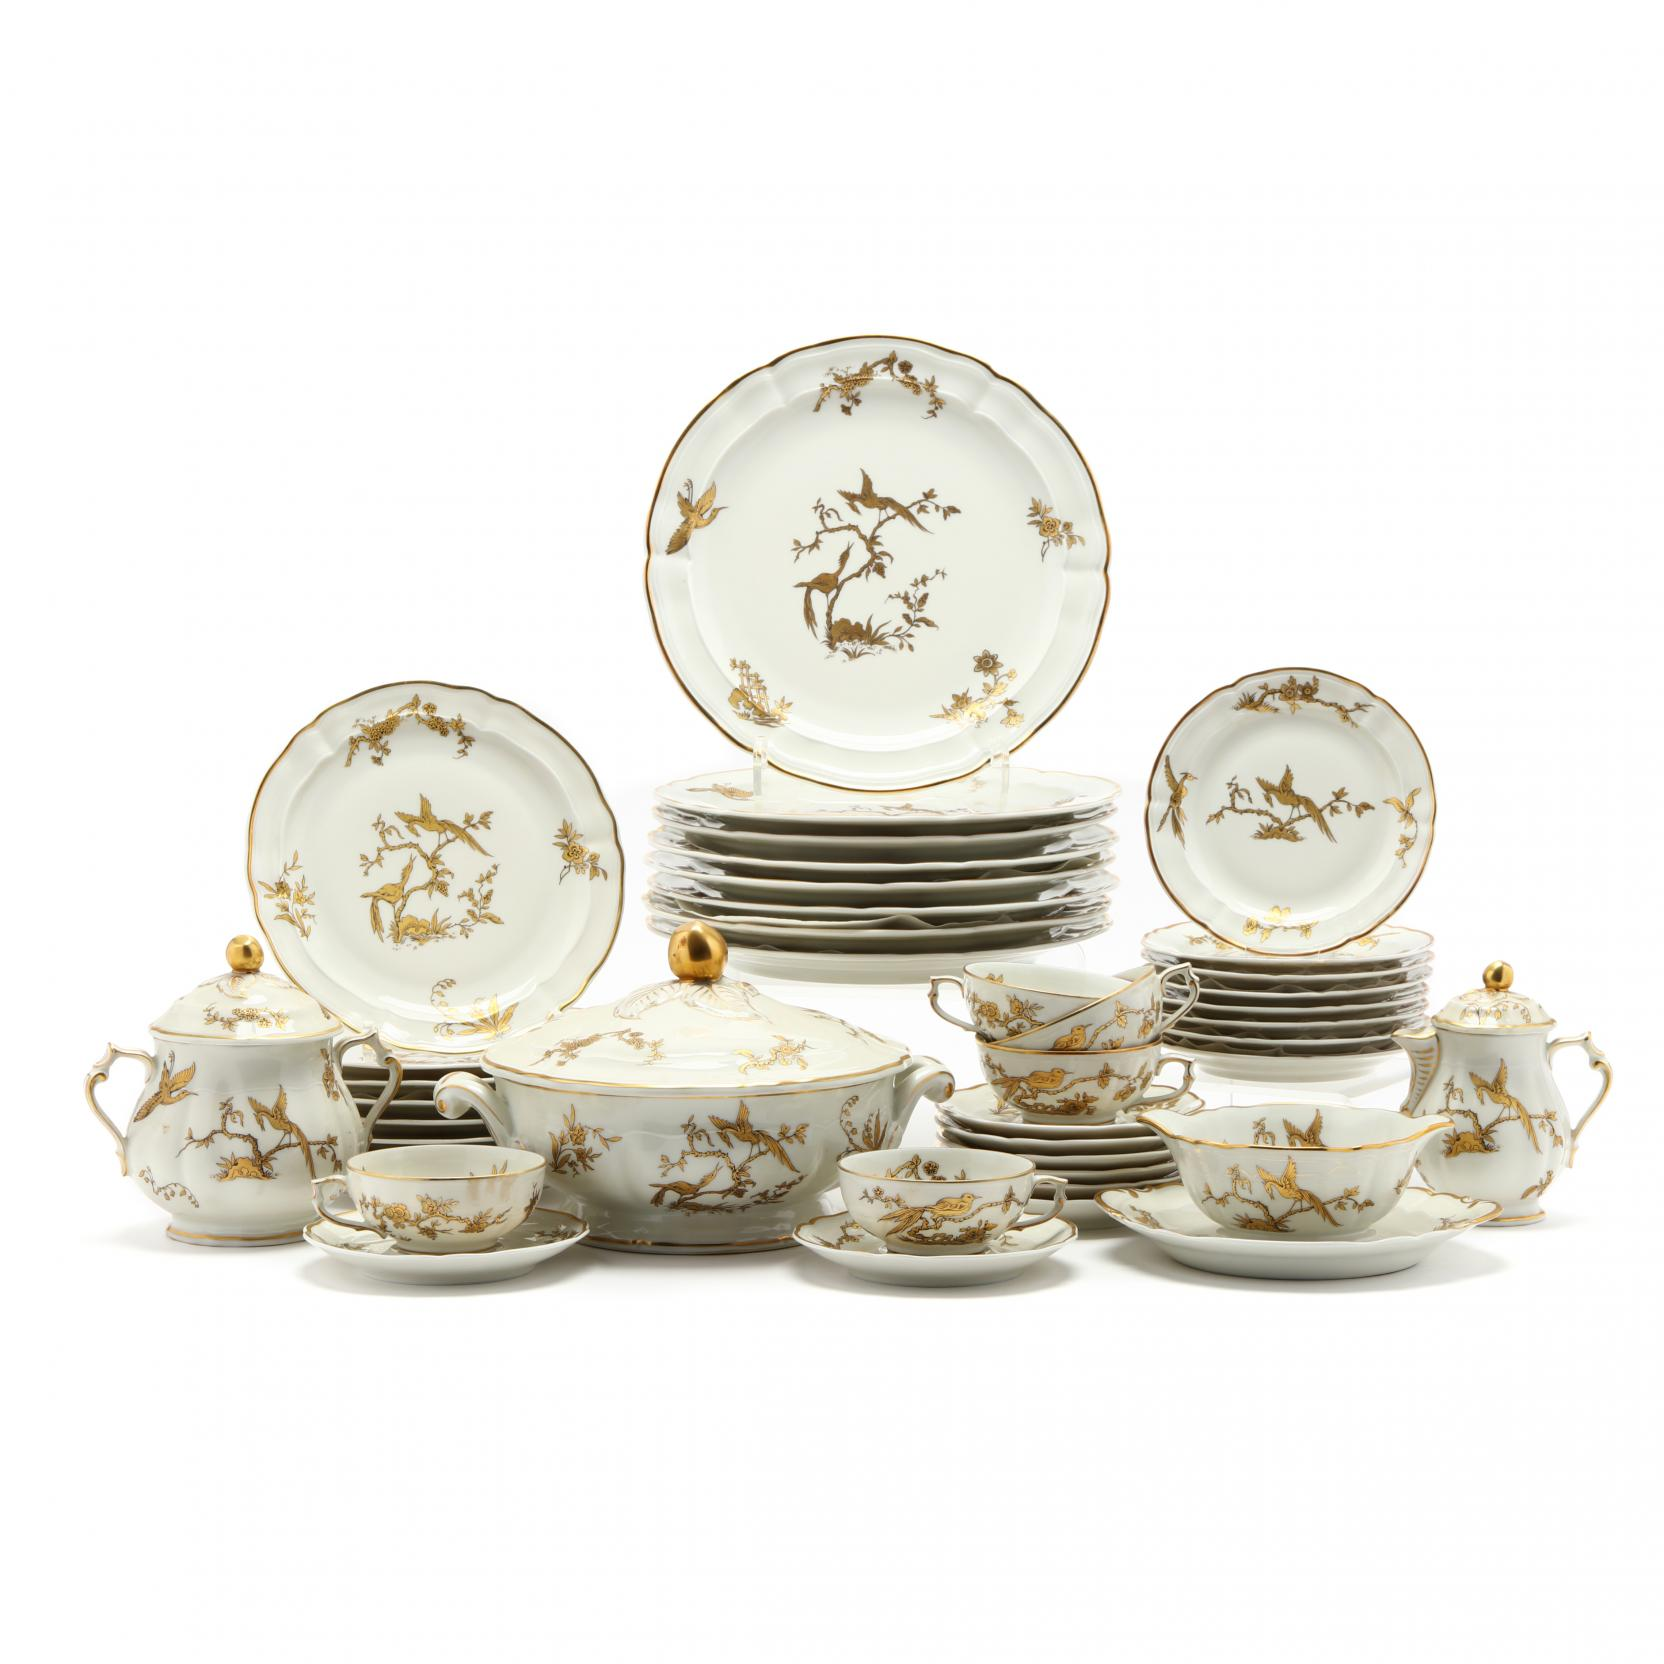 48-piece-set-of-limoges-tableware-designed-for-queen-elizabeth-ii